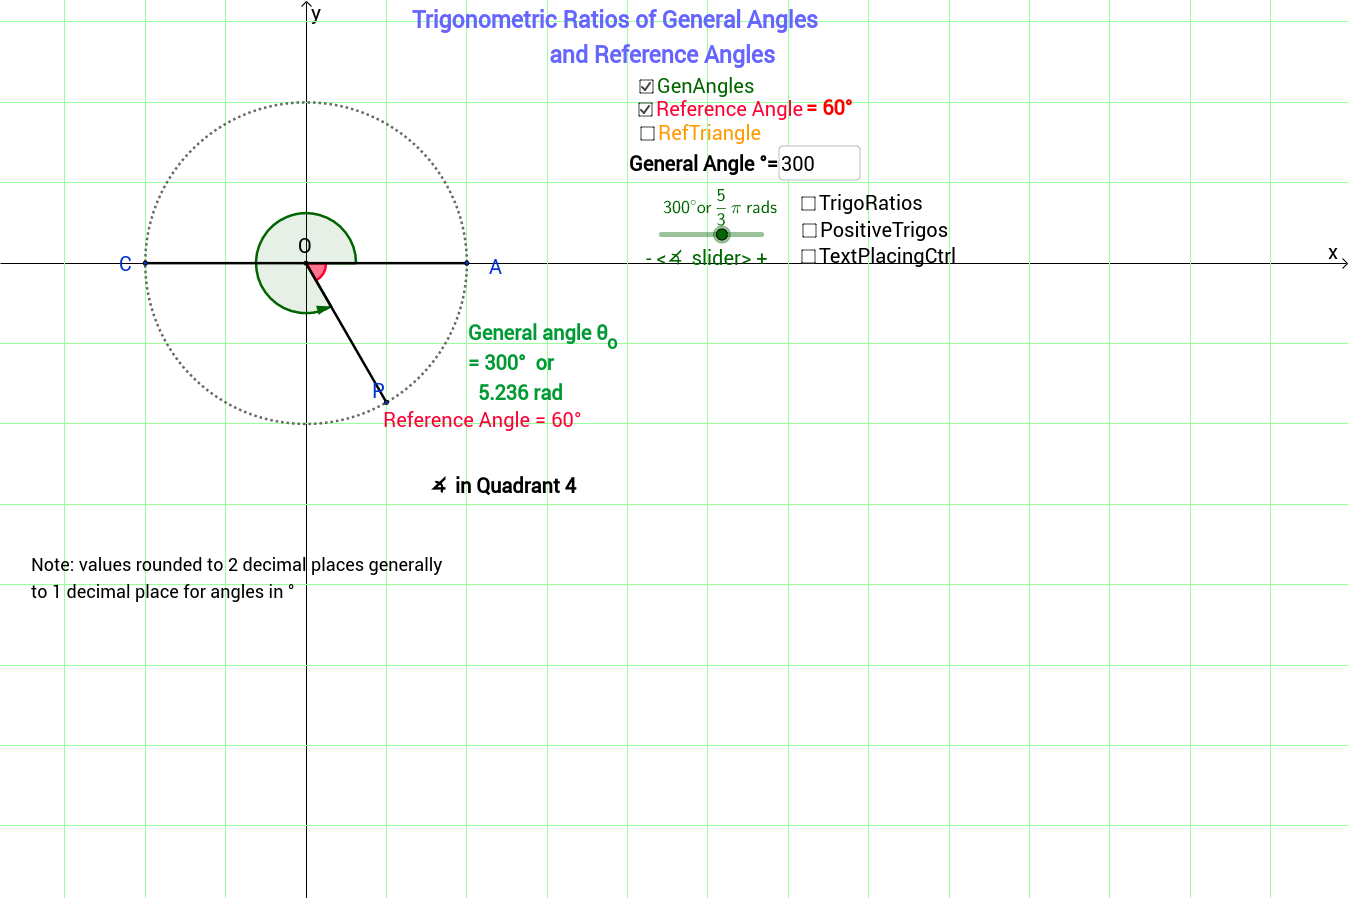 Trigonometric Ratios and Reference Angles of General Angles